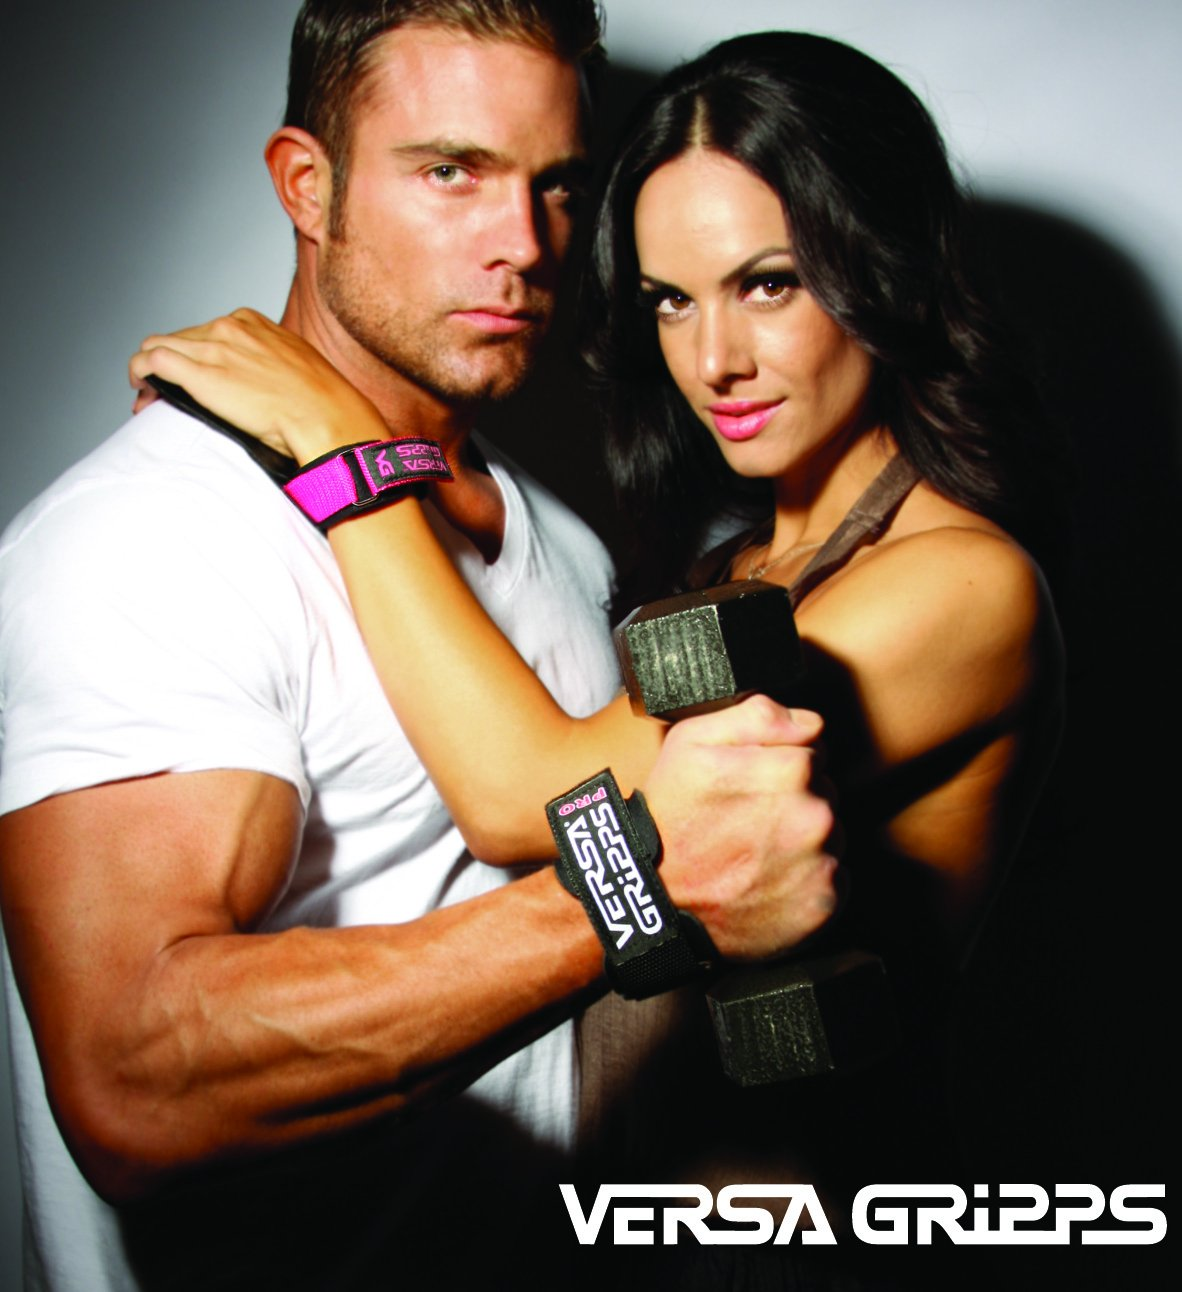 Versa Gripps PRO Authentic. The Best Training Accessory in the World. MADE IN THE USA (XS-Black)